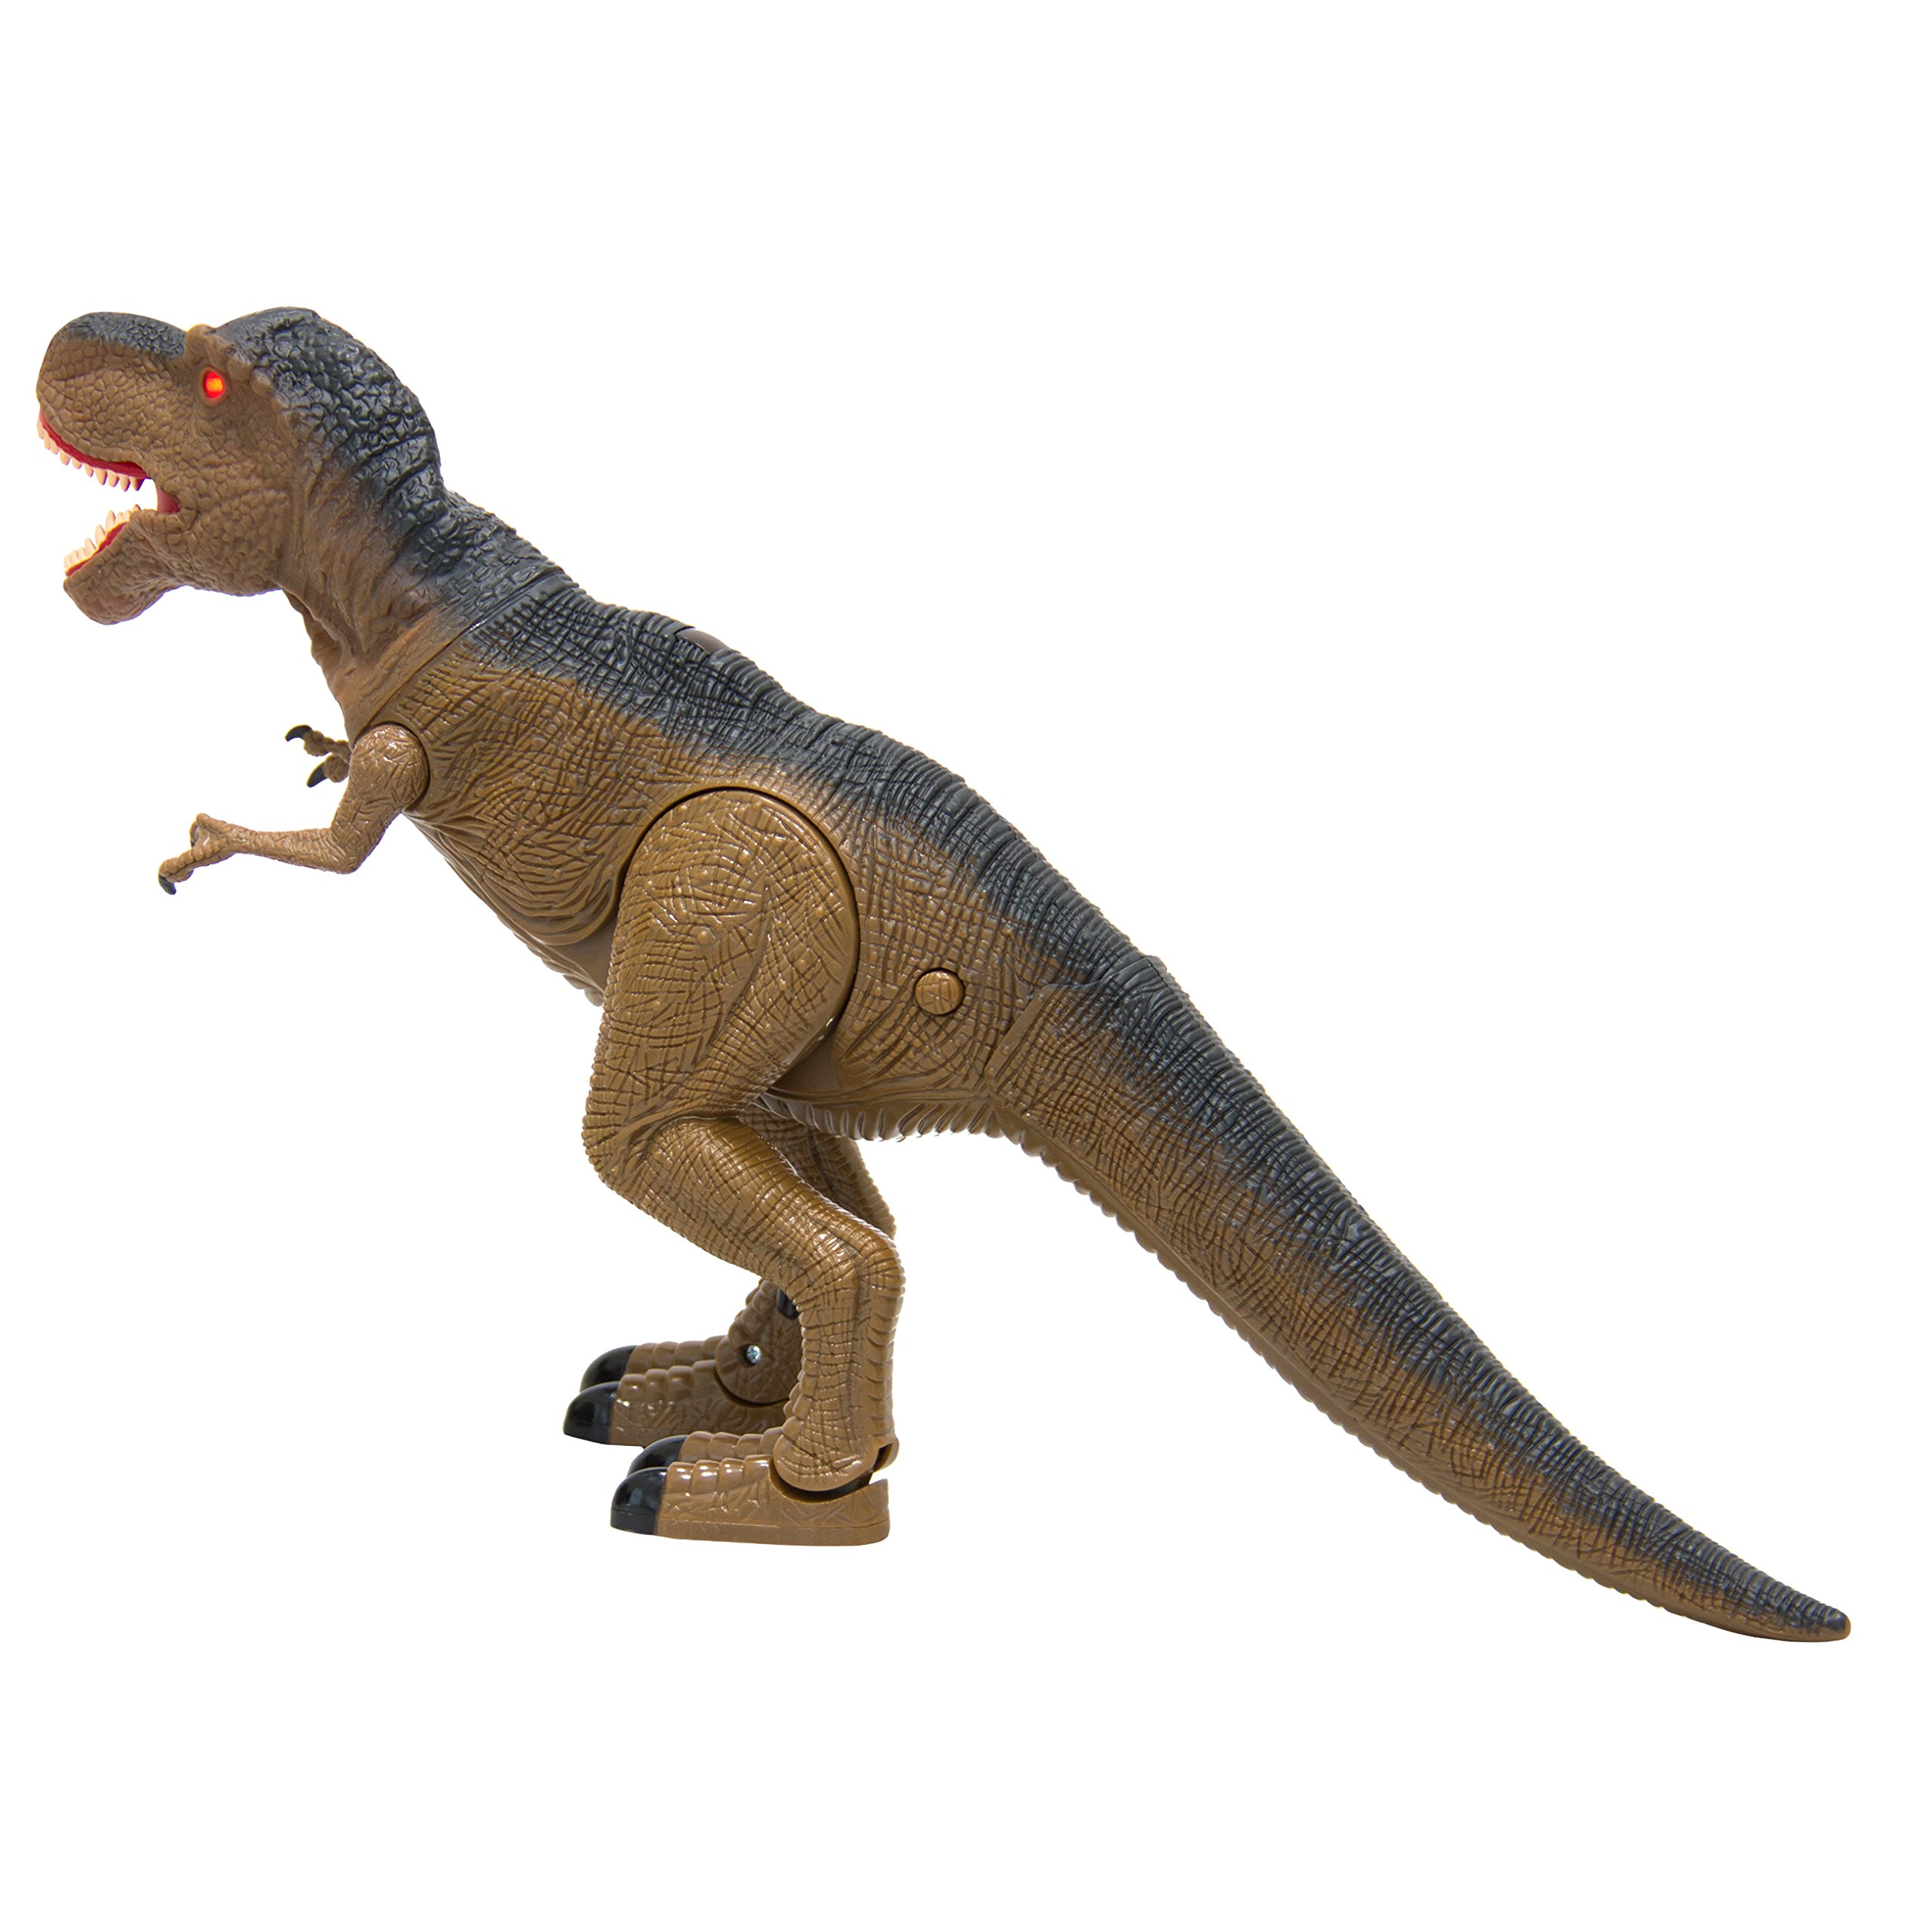 Best Choice Products 19in Kids Walking Remote Control Tyrannosaurus Rex Dinosaur RC Toy w/ Light-Up Eyes, Sounds by Best Choice Products (Image #2)